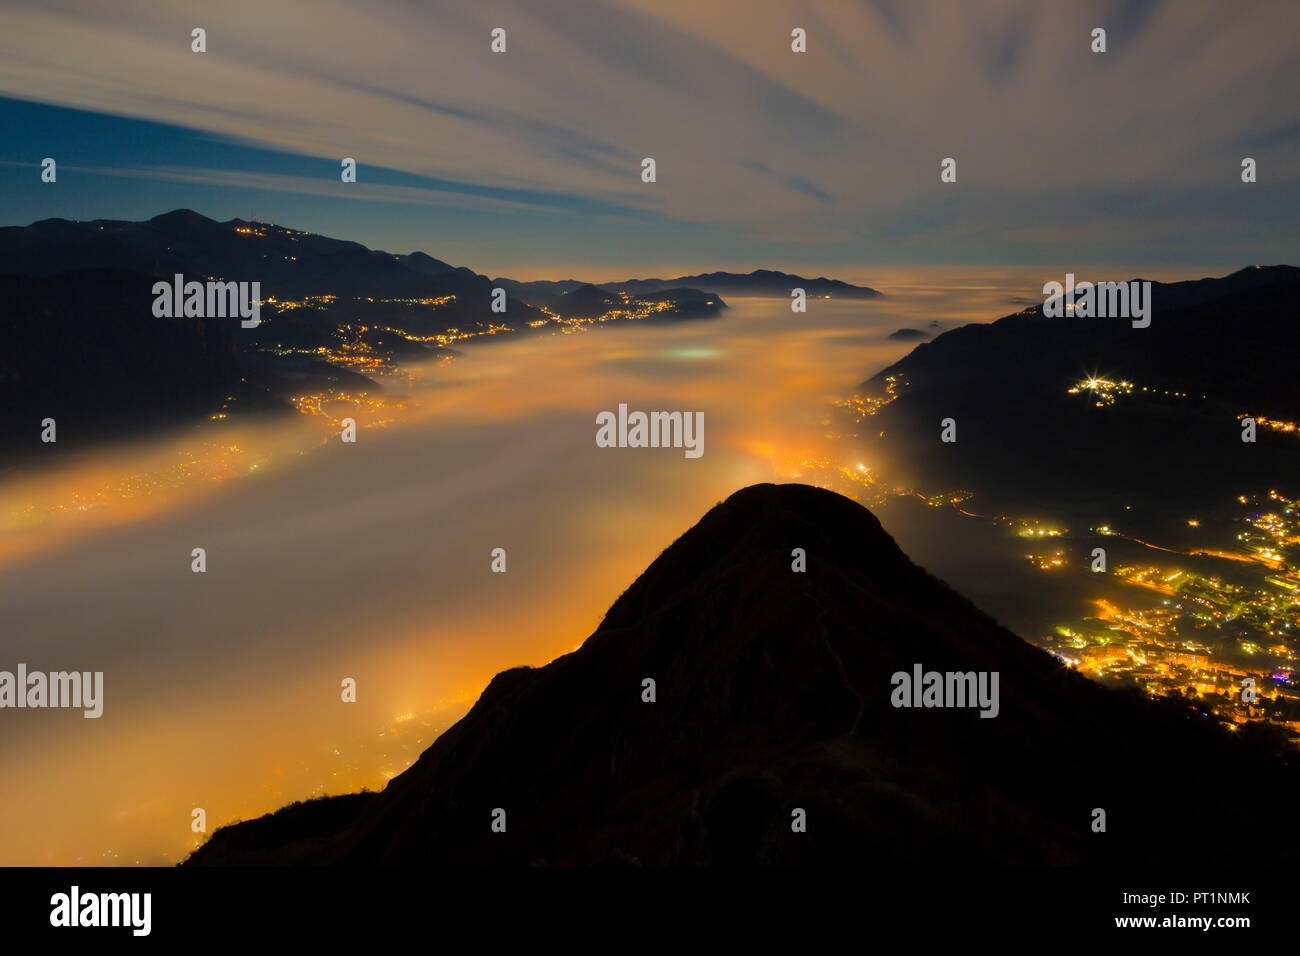 Fog bank illuminated from the lights of the cities below viewed from the top of Barro mount, Barro mount Regional Park, Lecco province, Lombardy, Italy - Stock Image